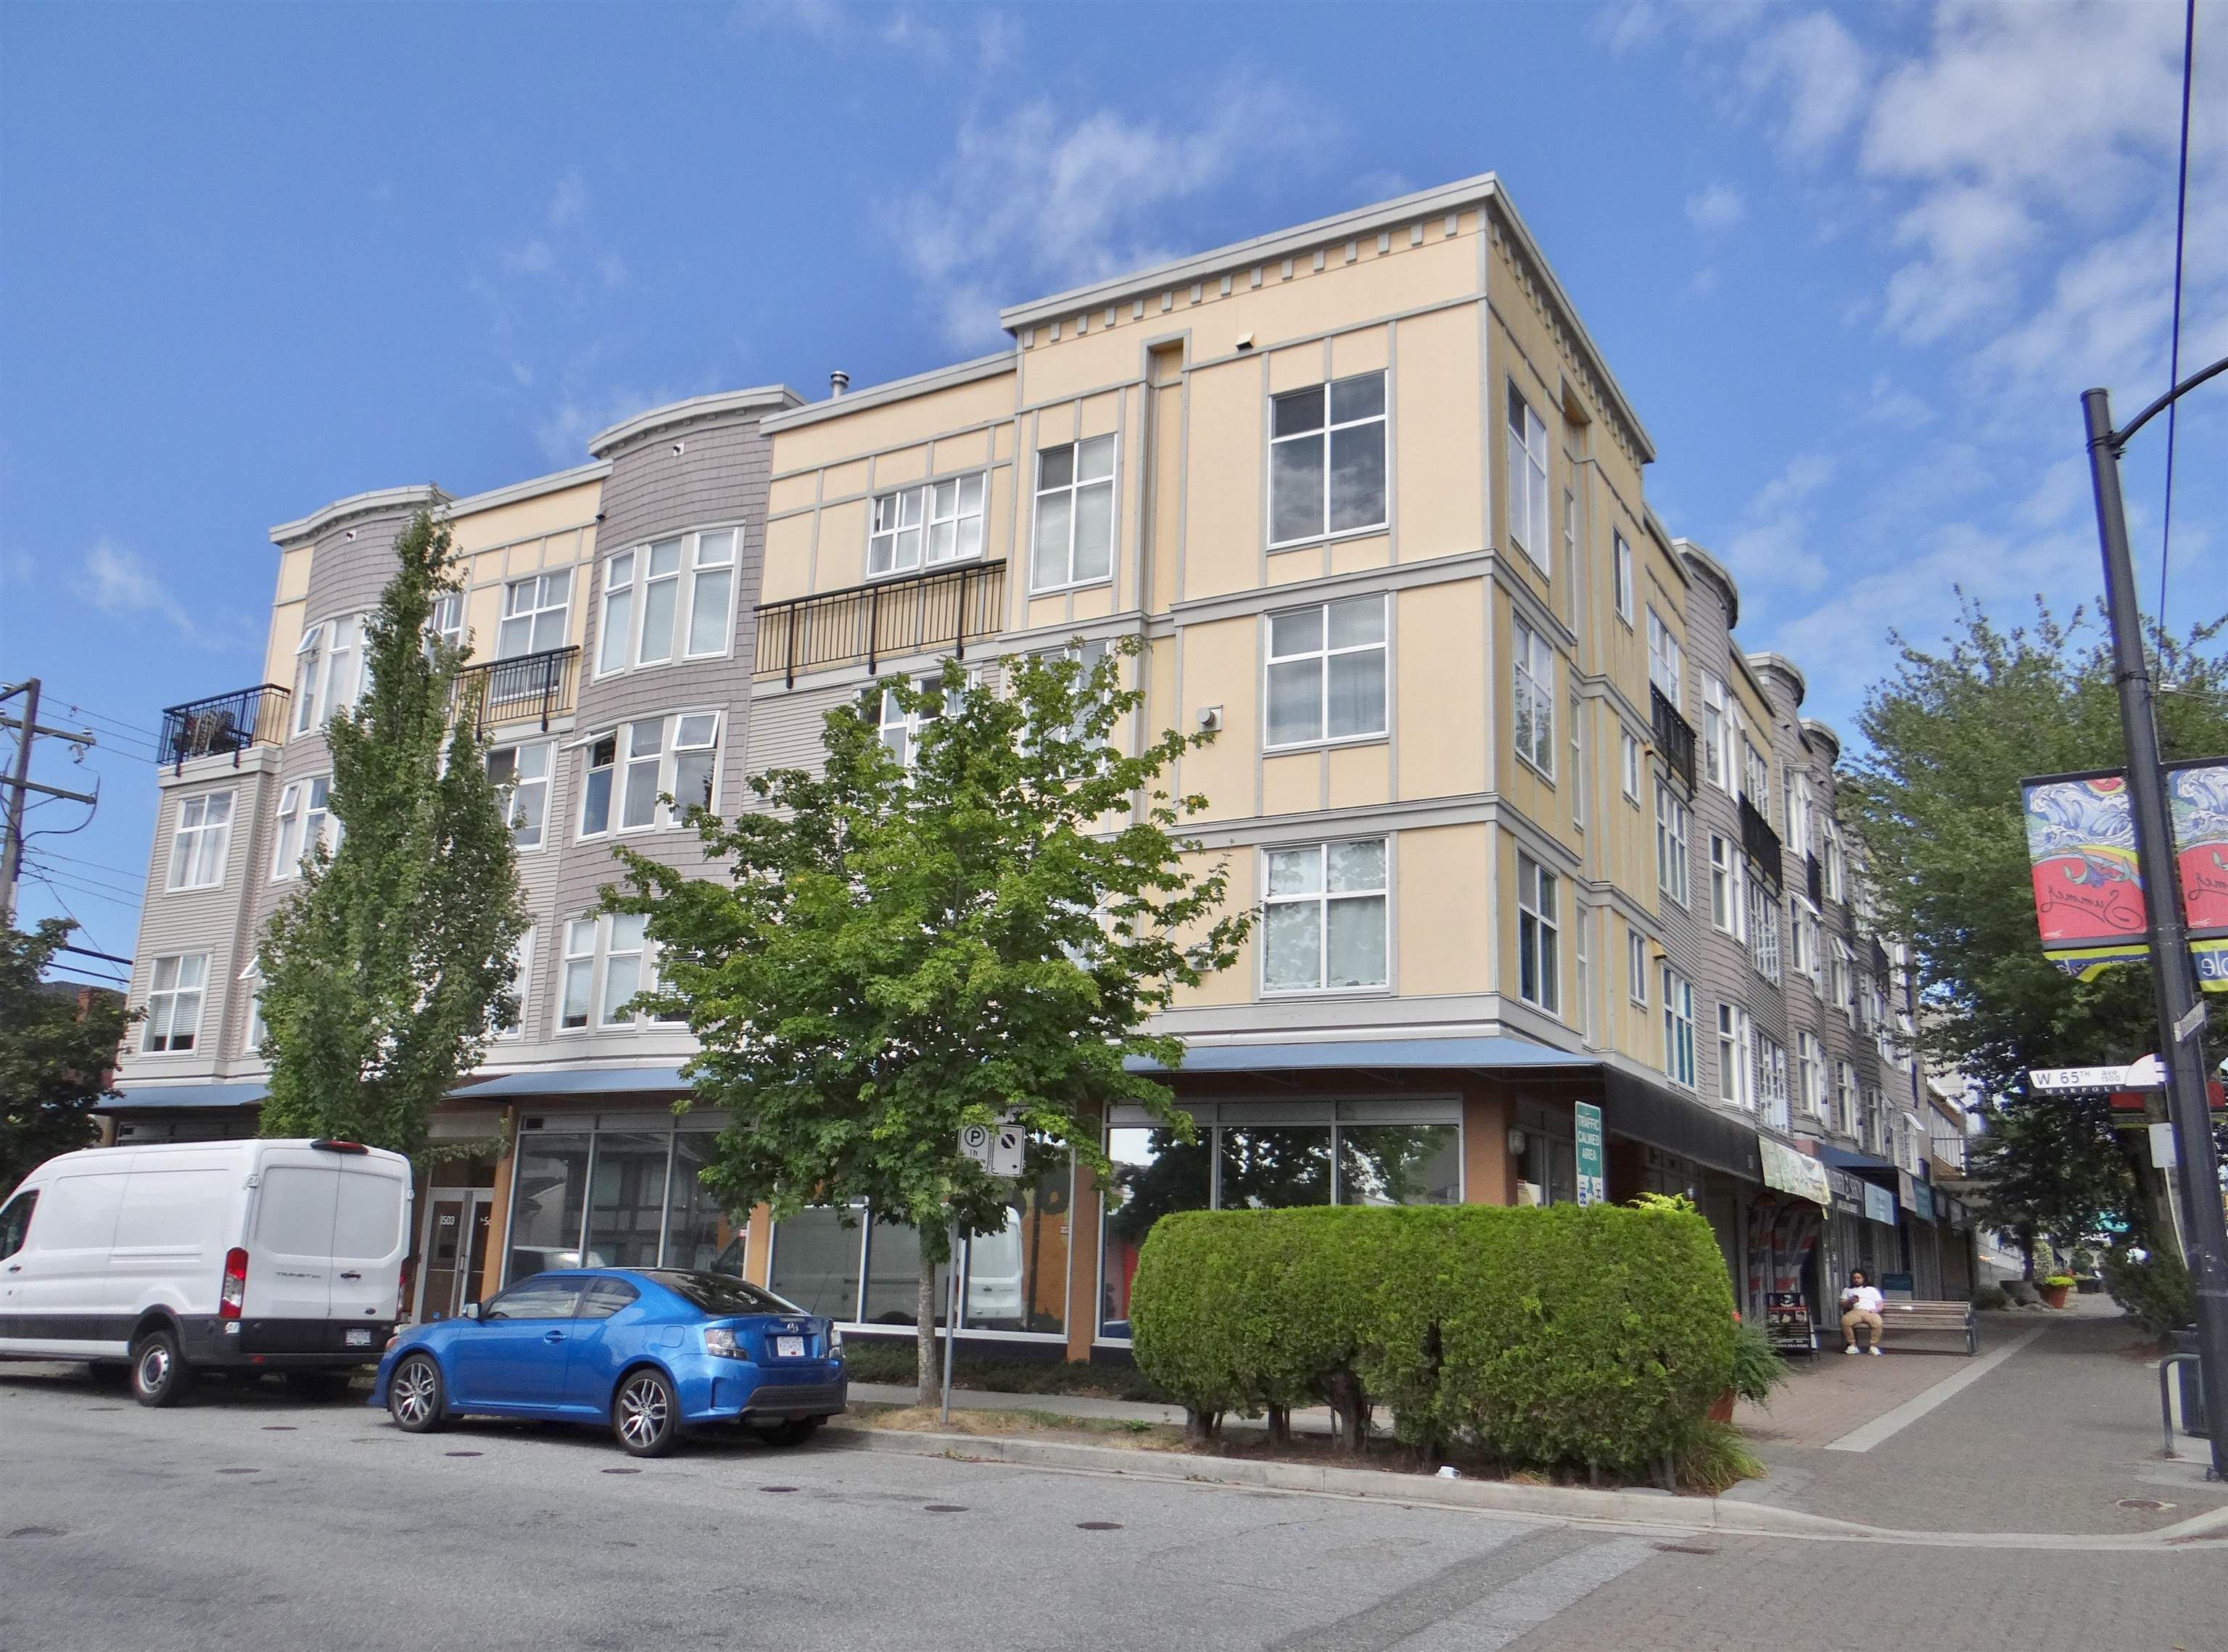 """Main Photo: 206 1503 W 65TH Avenue in Vancouver: S.W. Marine Condo for sale in """"The Soho"""" (Vancouver West)  : MLS®# R2610726"""